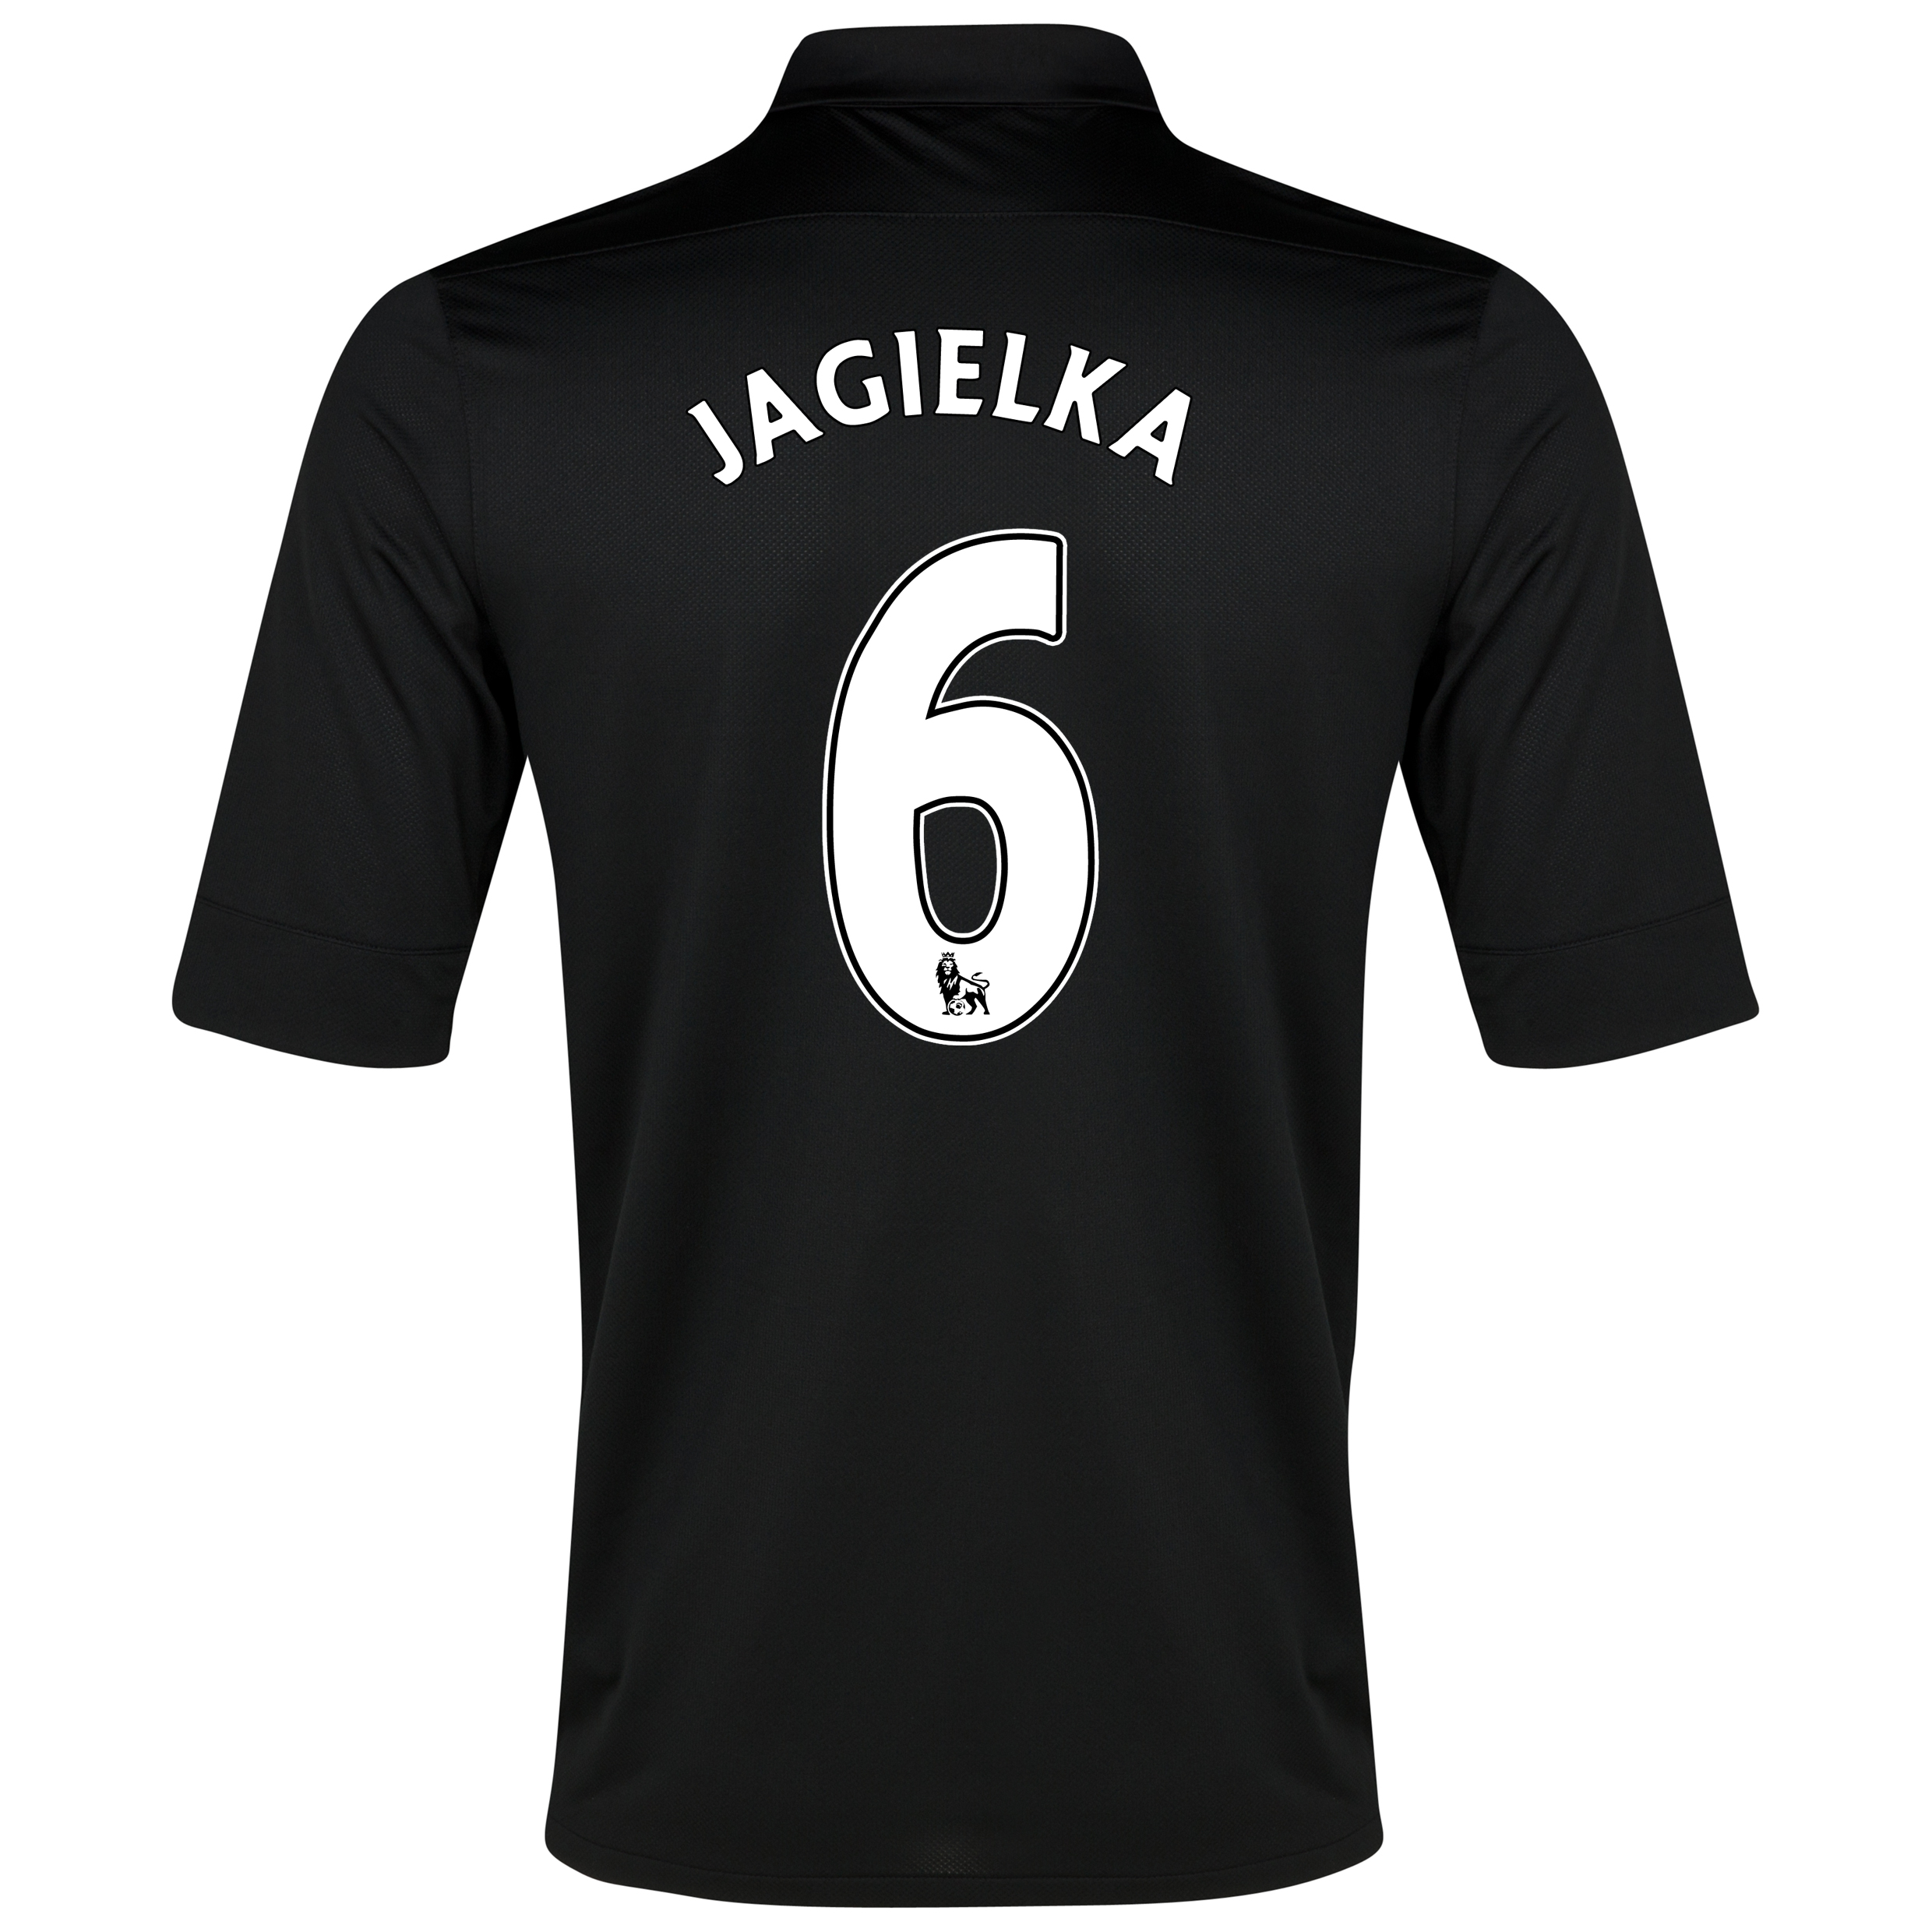 Everton Away Shirt 2012/13 with Jagielka 6 printing